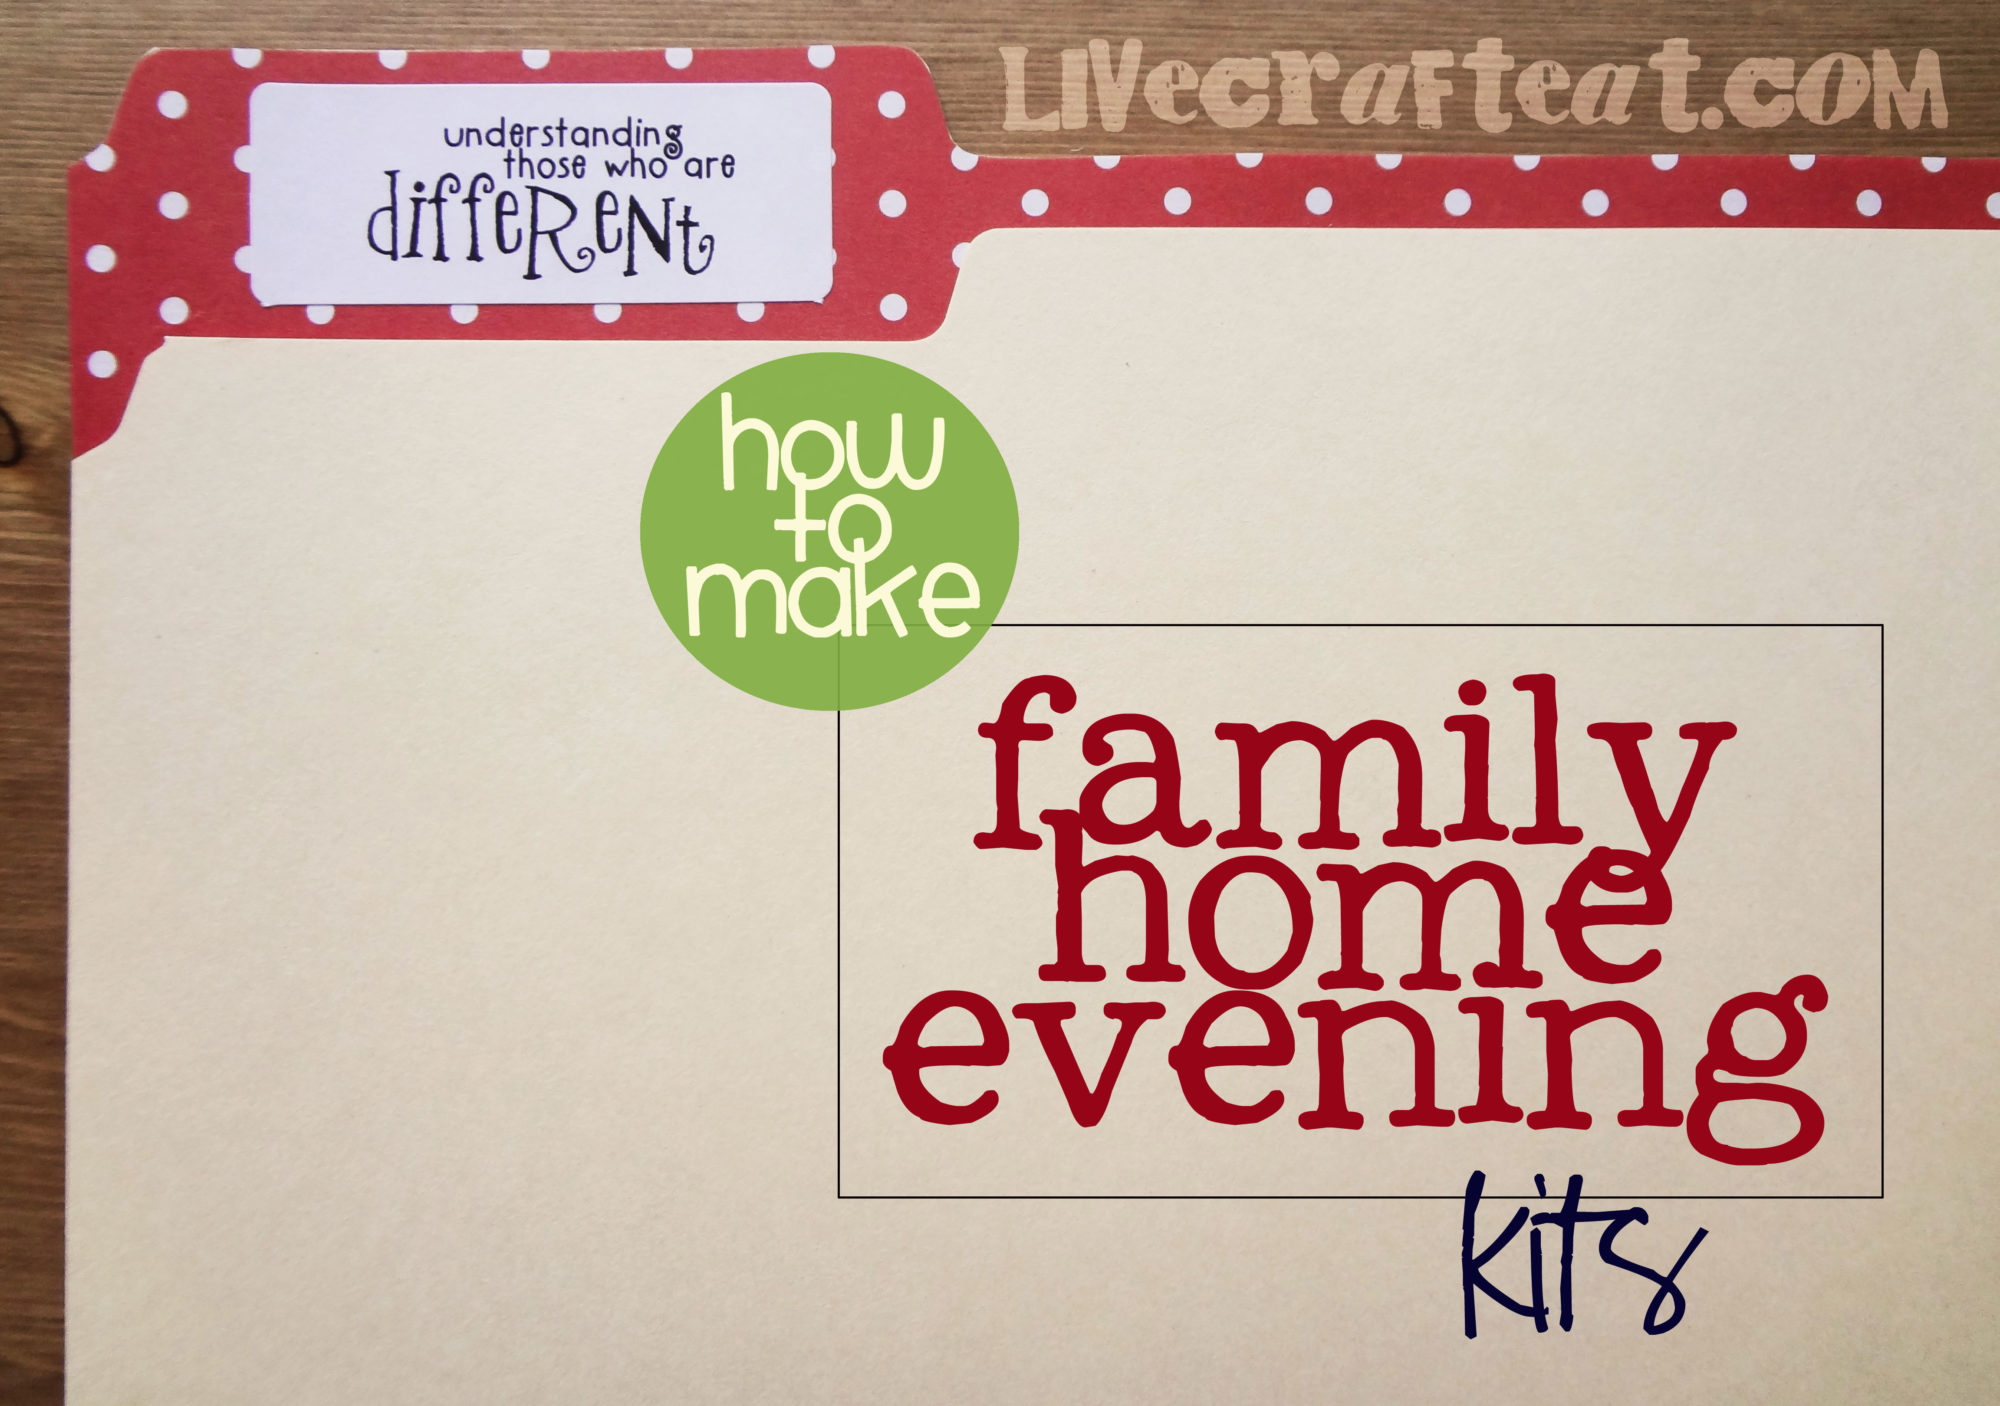 How To Make A Family Home Evening Kit | Live Craft Eat